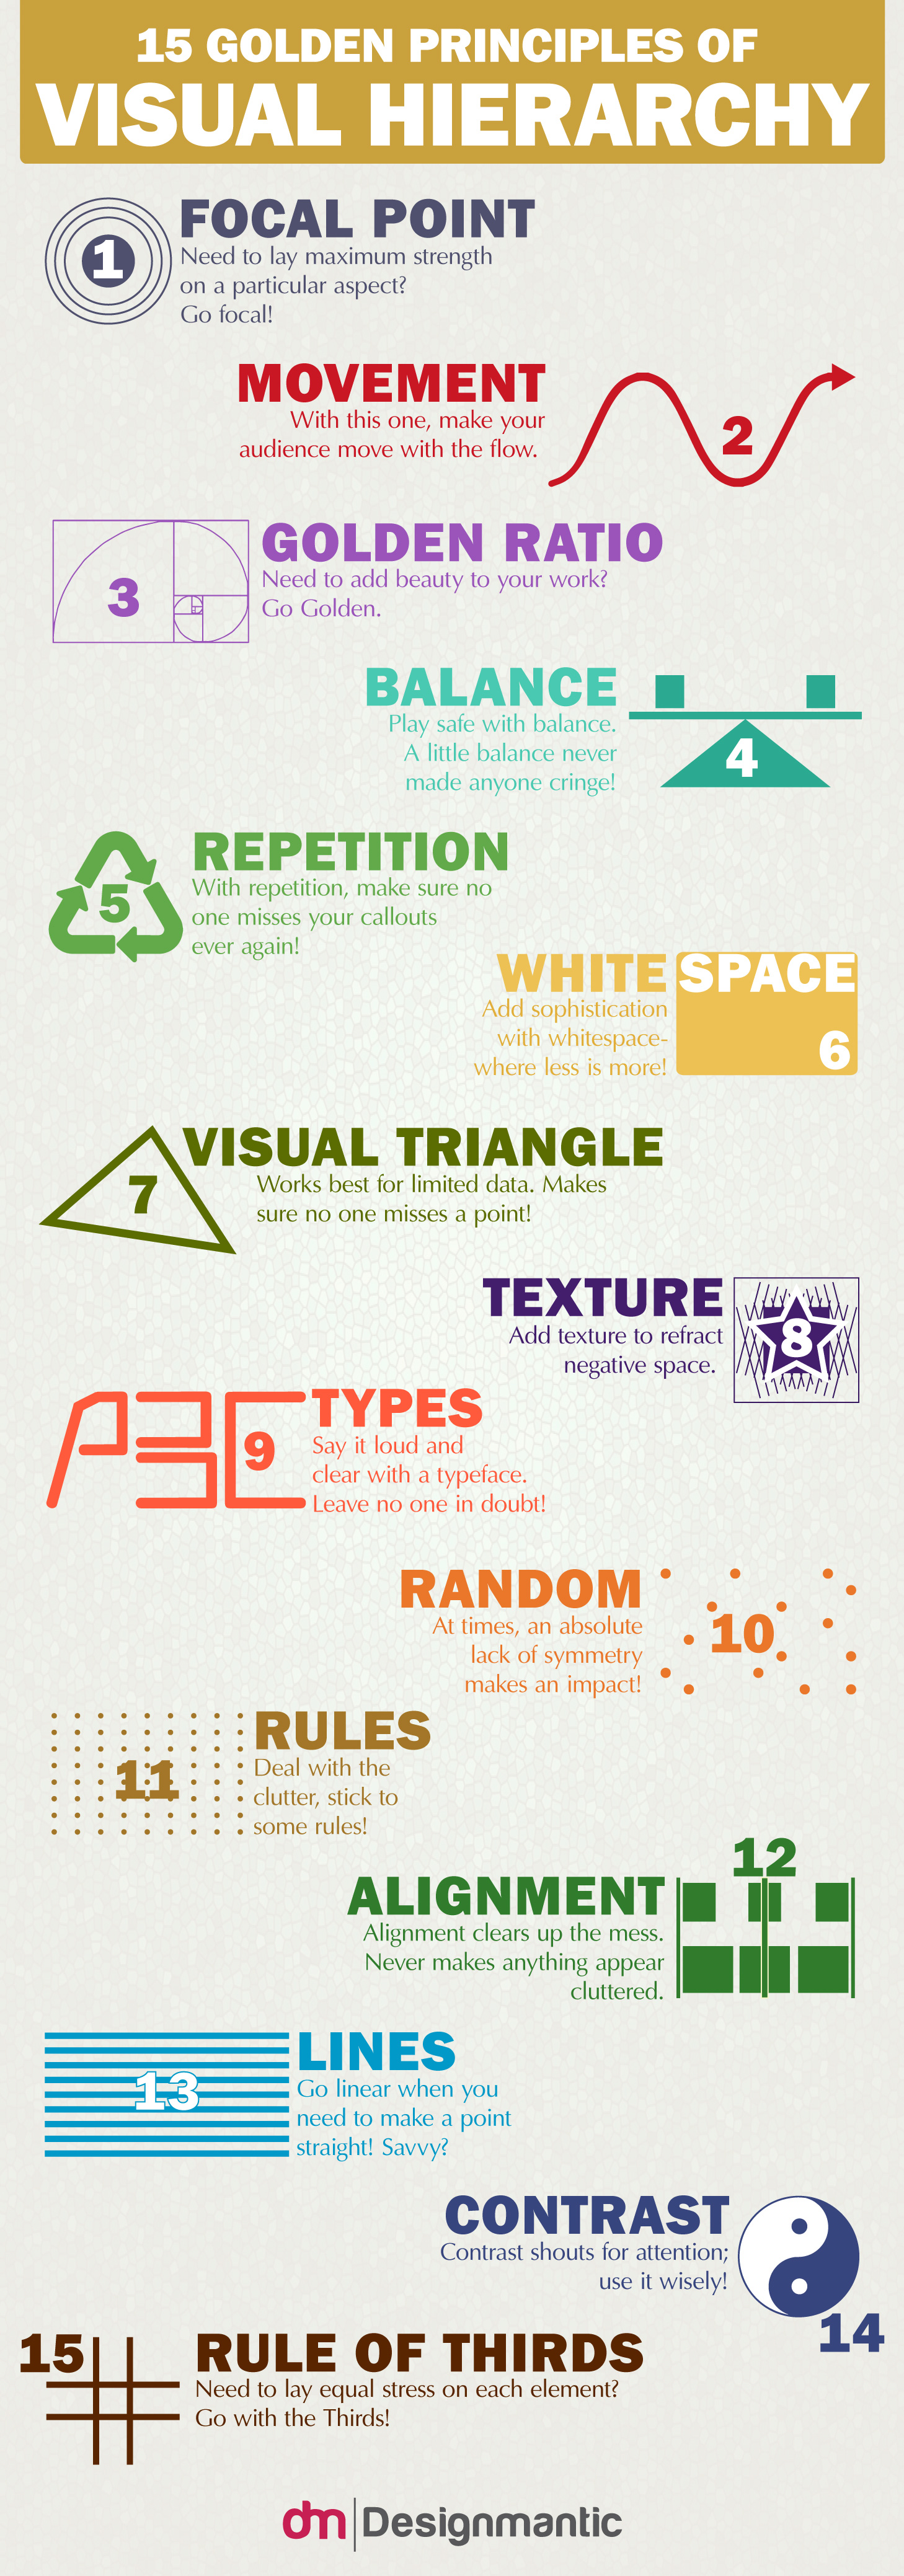 infographic 15 golden principles of visual hierarchy designtaxi com